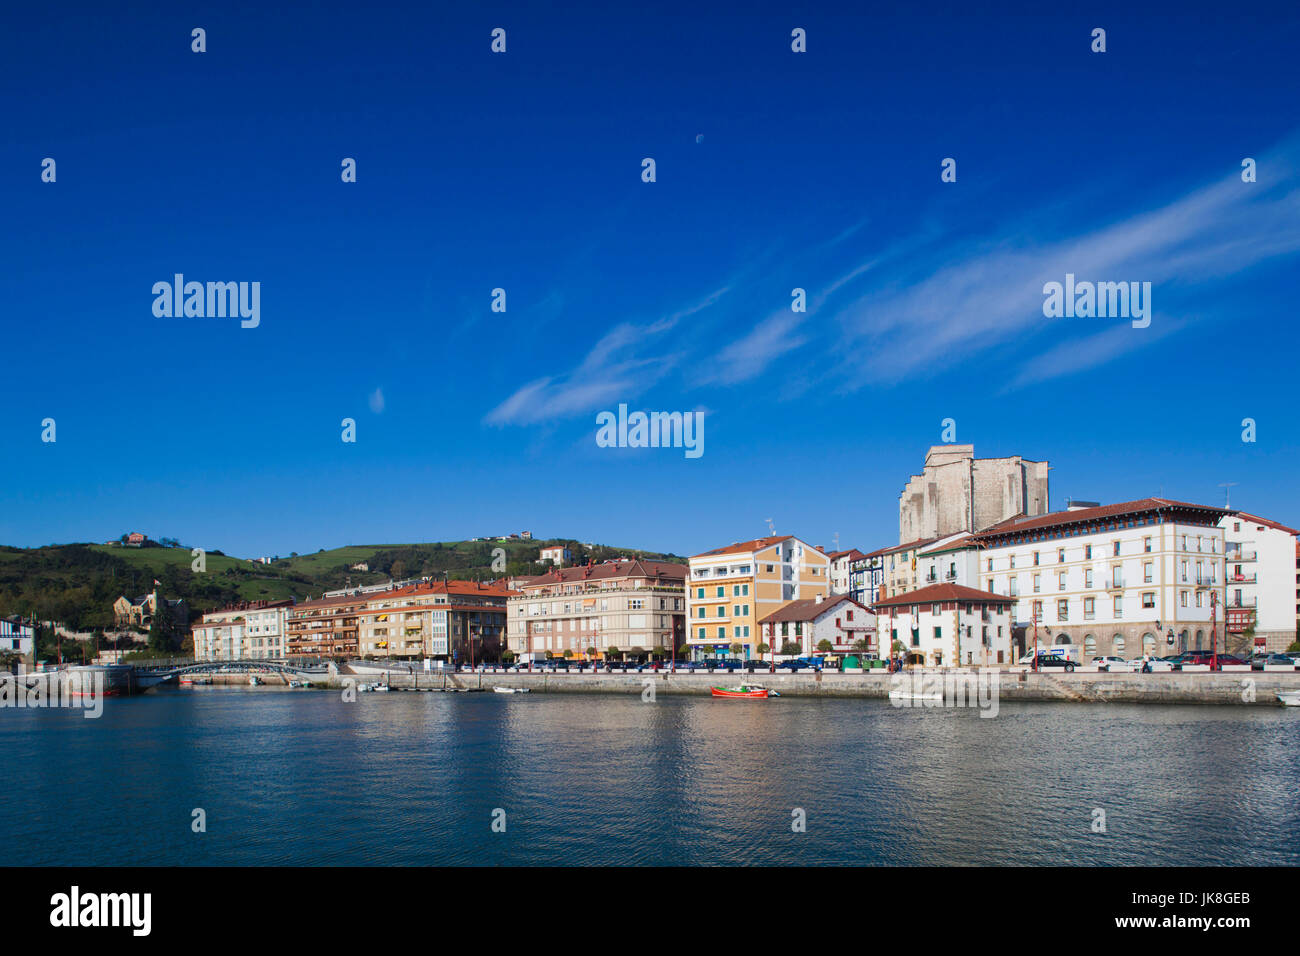 Spain, Basque Country Region, Guipuzcoa Province, Zumaia, waterfront view of town - Stock Image